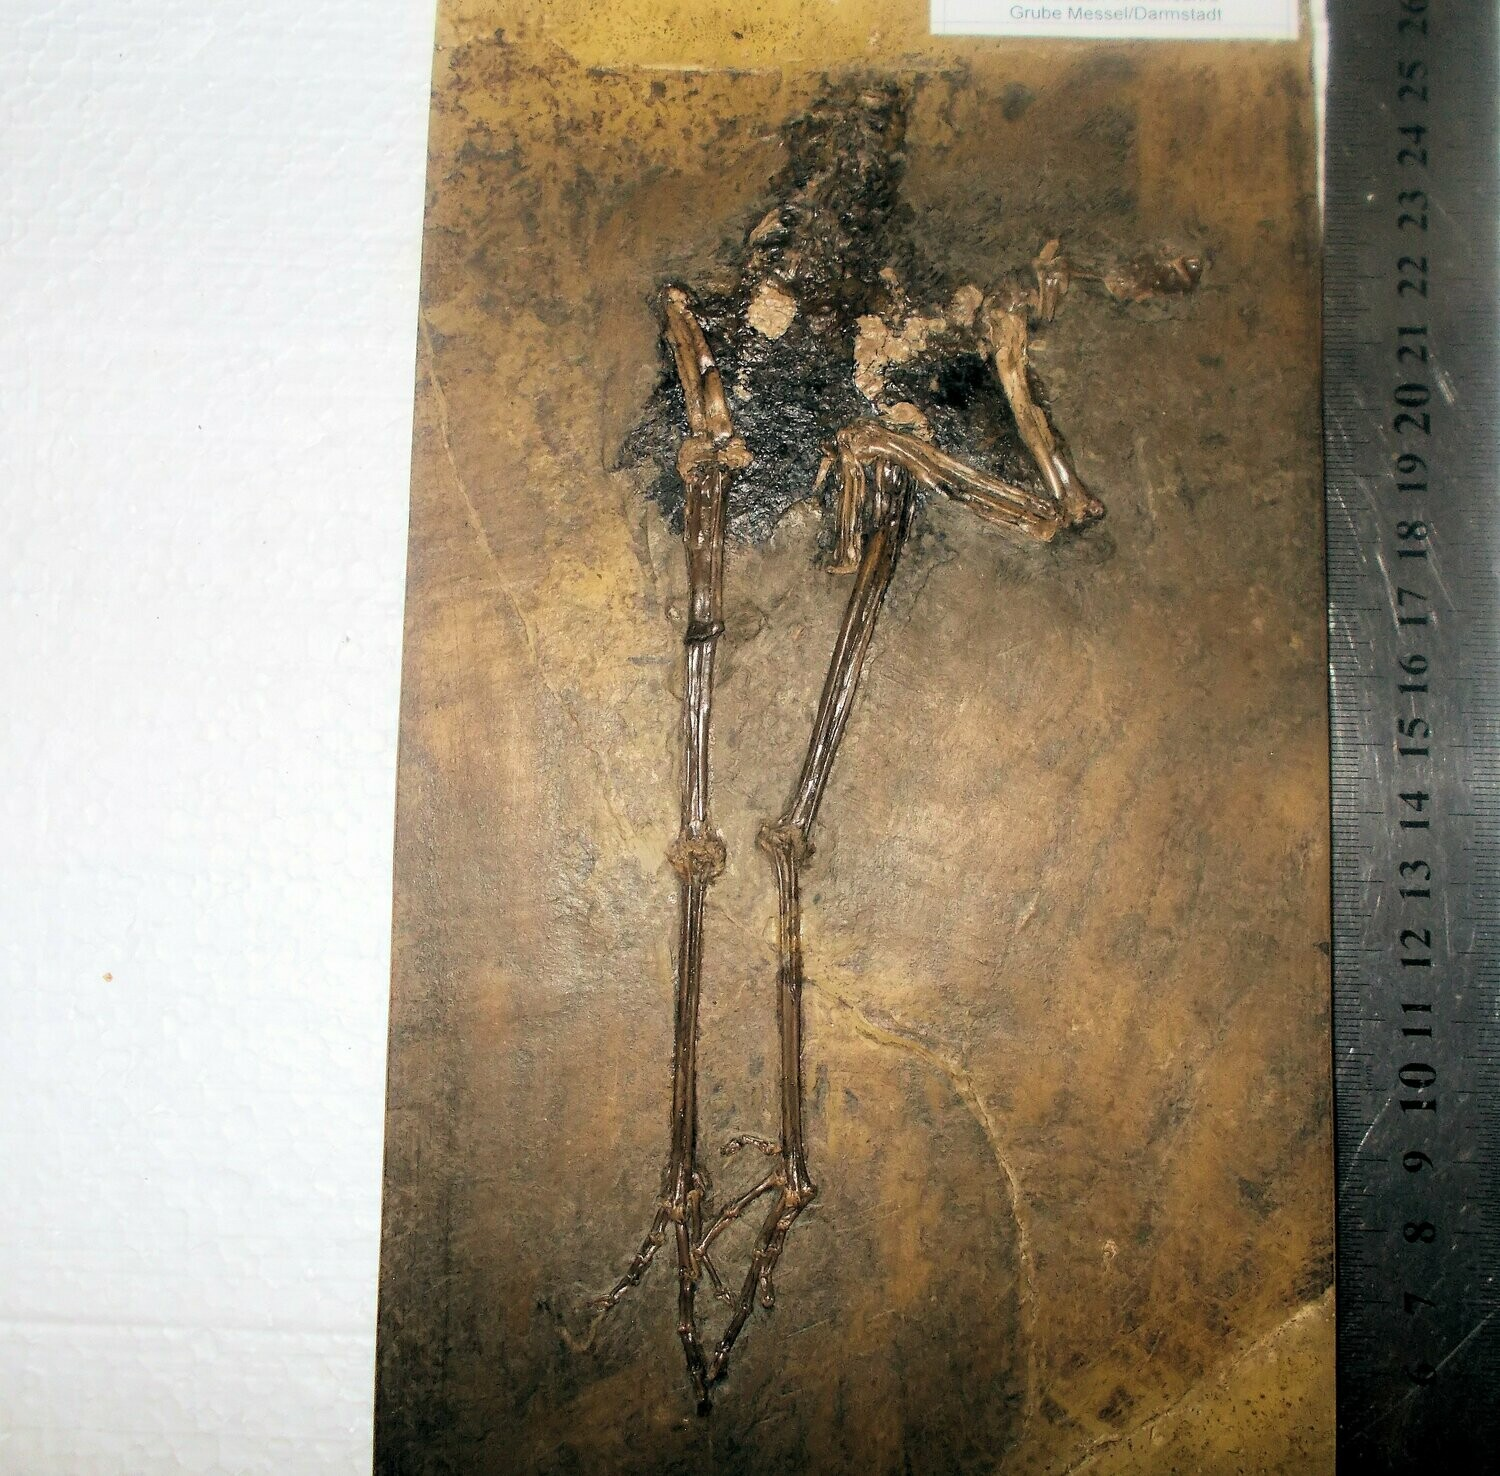 Fine and rare 19cm near-complete bird: Messelornis cristata; superb detail of limbs with digits and claws, and articulated wing bones !